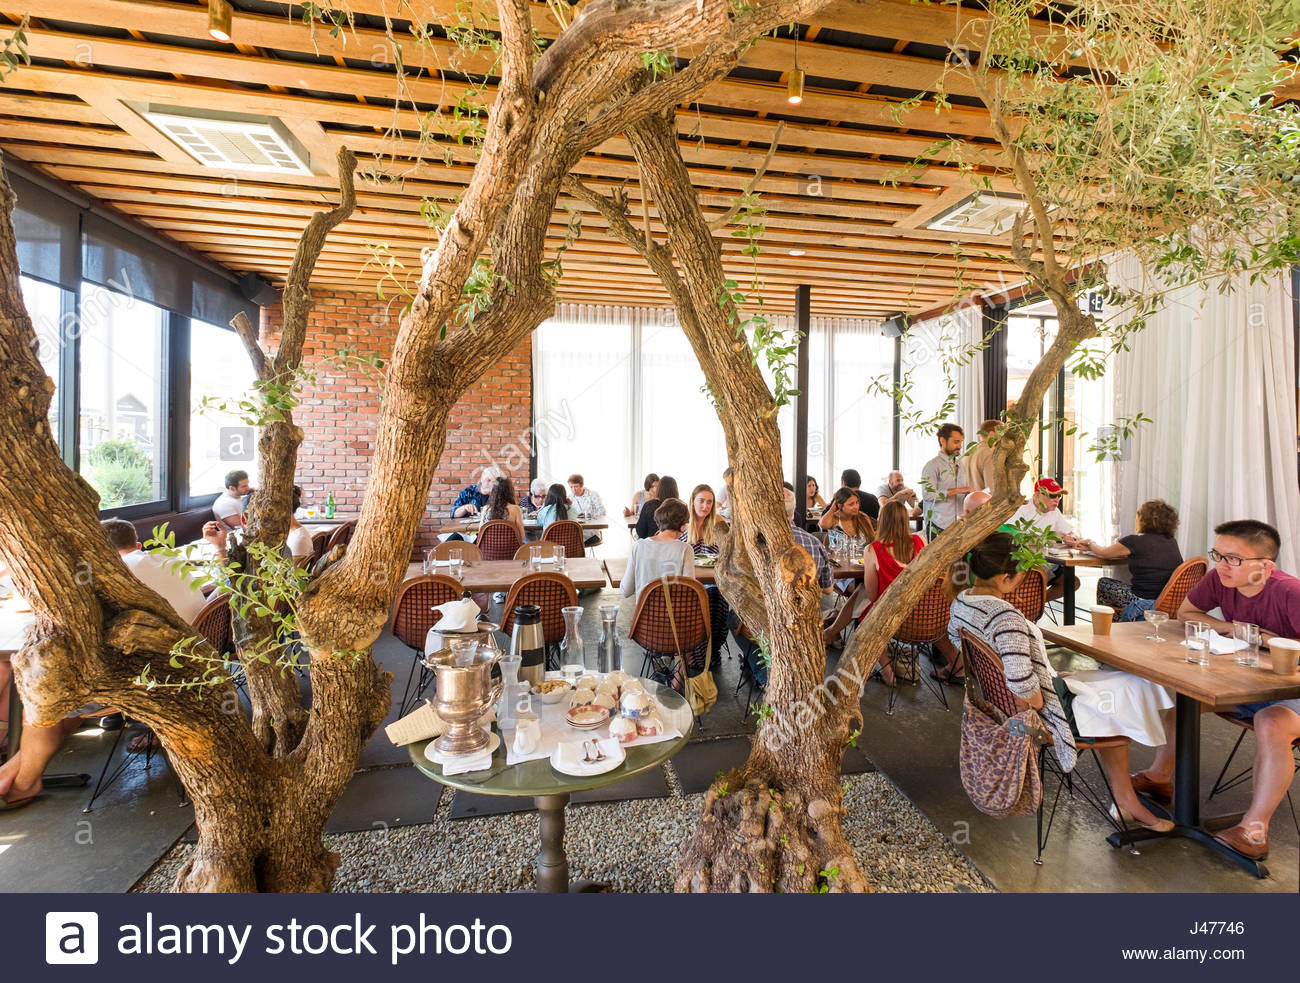 """People sitting at tables in """"The Tasting Kitchen"""" restaurant ..."""